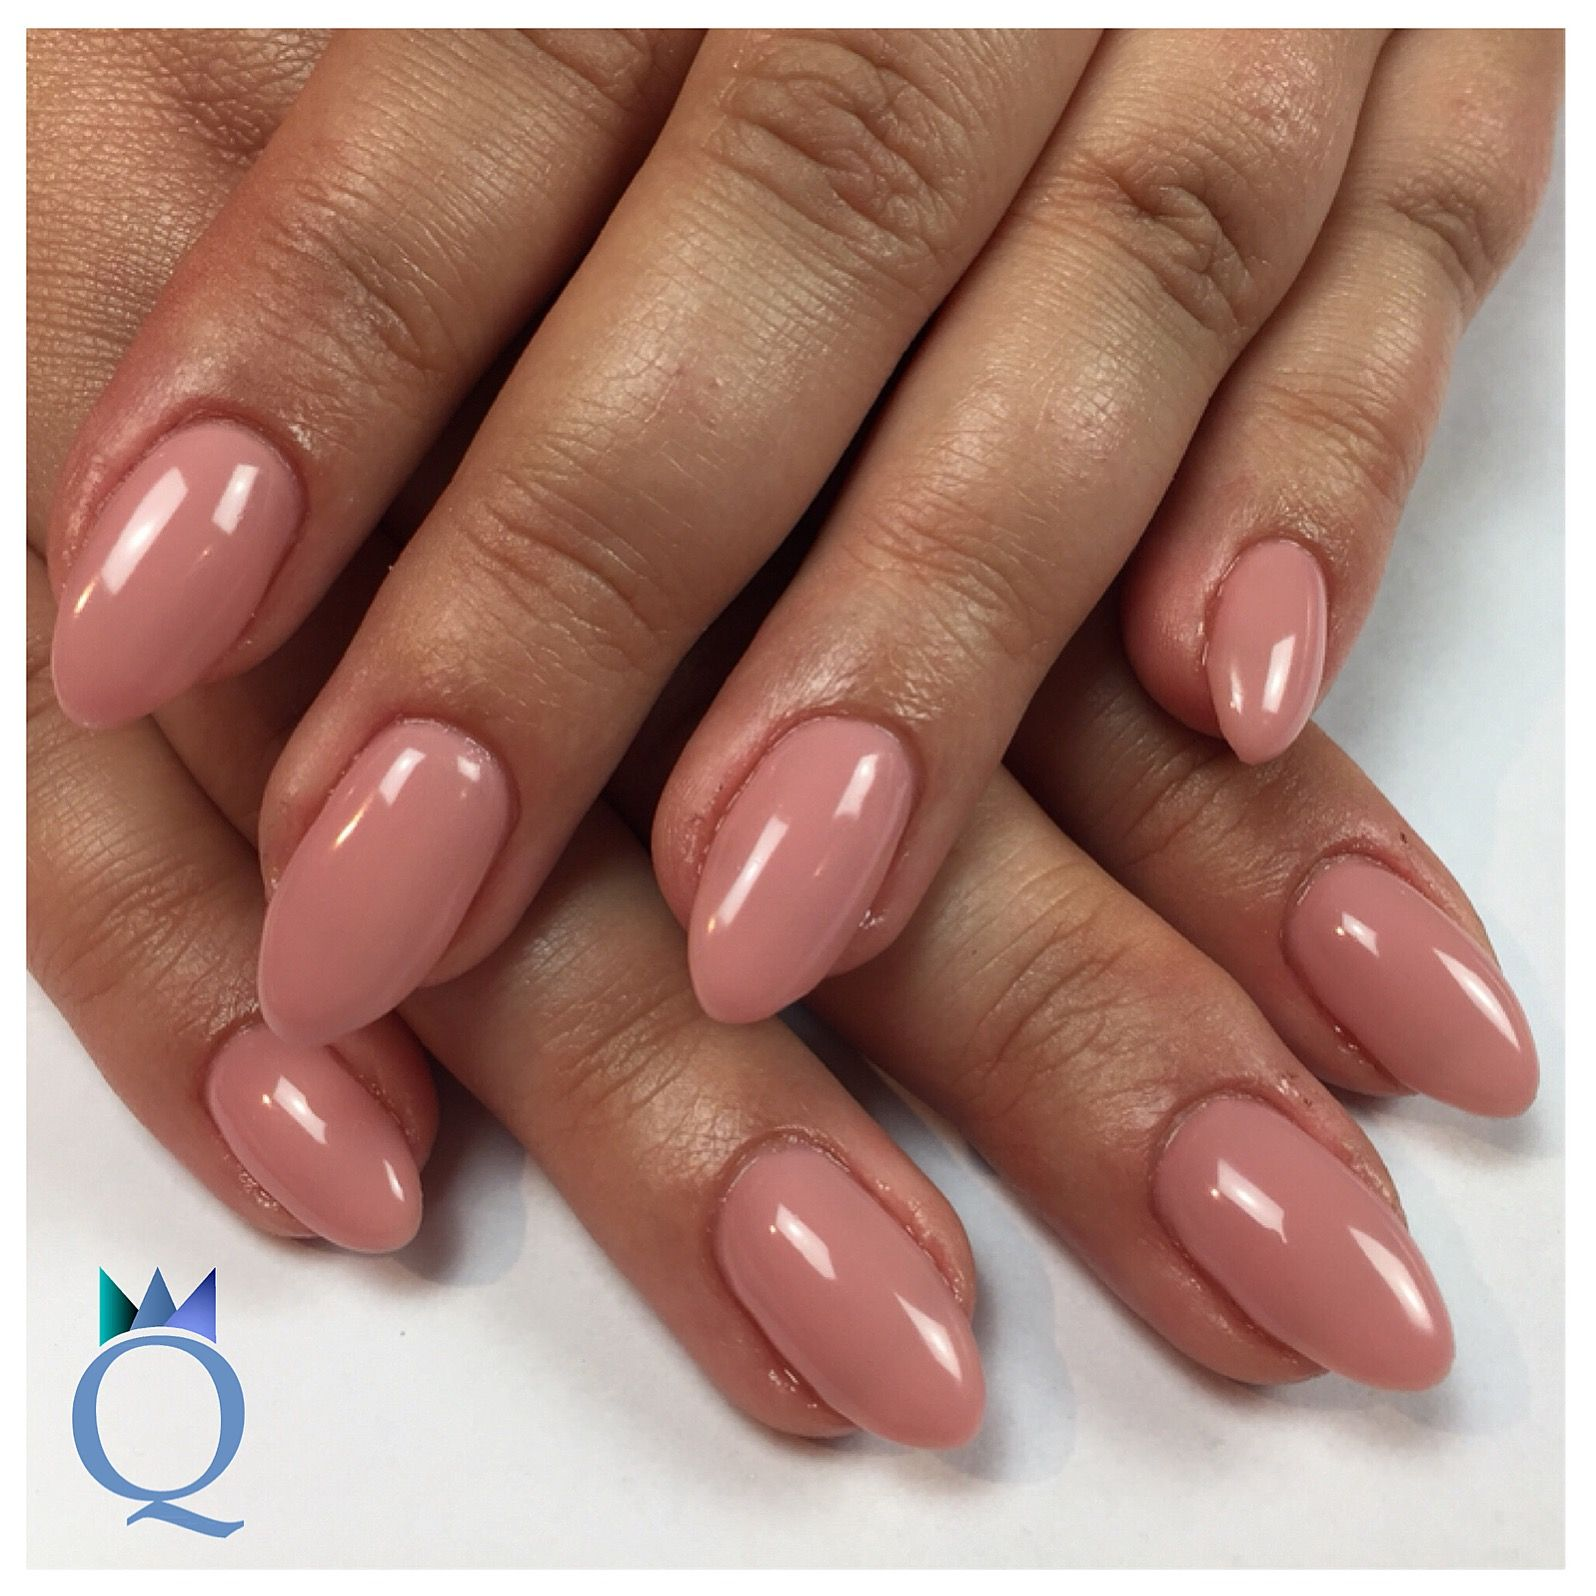 Nageldesign Weiß Rosa Almondnails Gelnails Nails Rose Mandelform Gelnägel Nägel